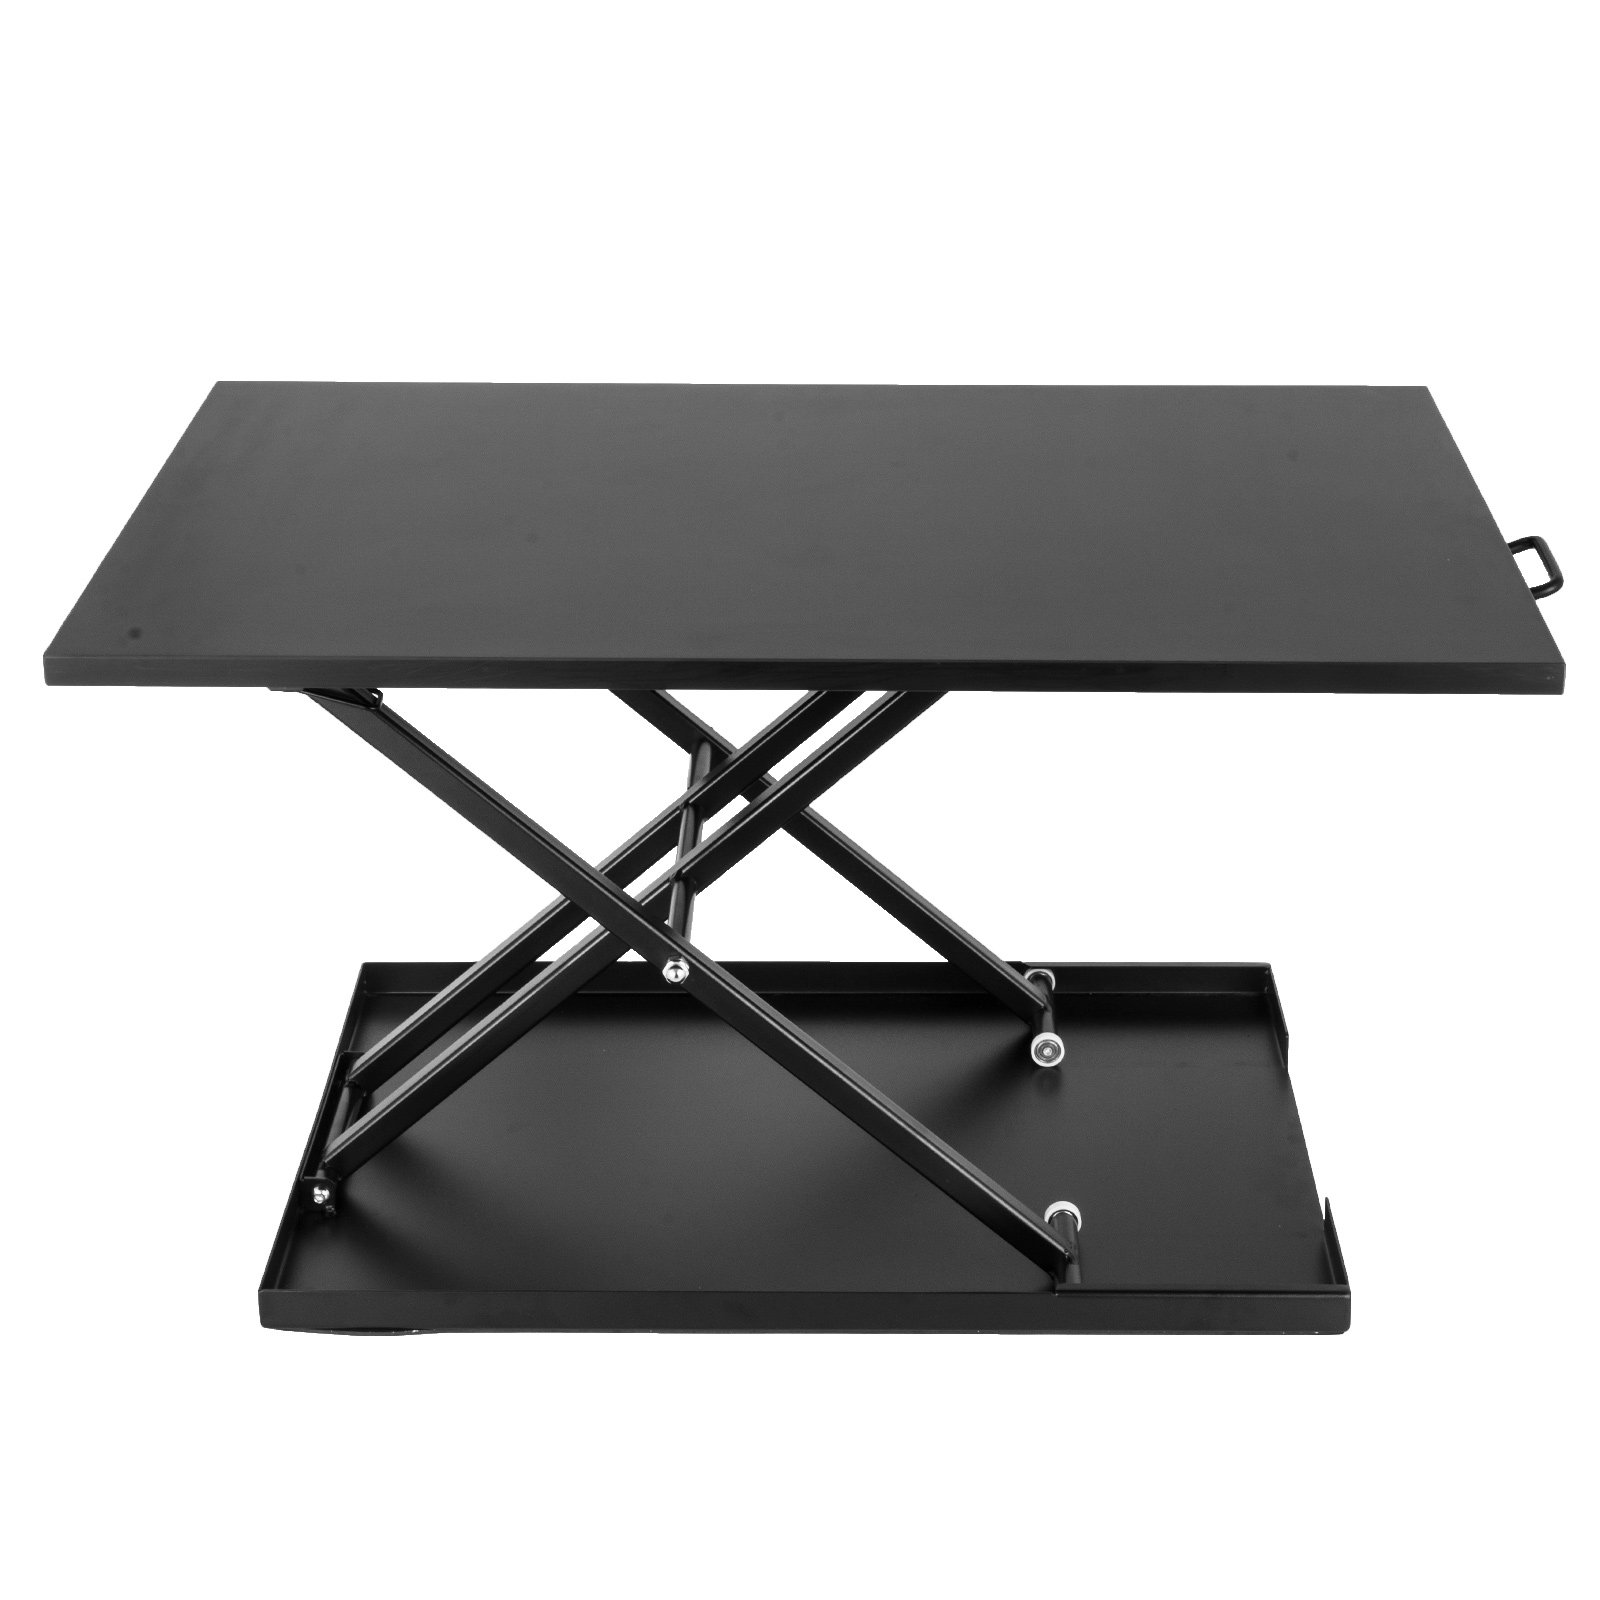 Superland 32''x22'' Standing Desk Adjustable Height Stand Up Desk Computer Workstation Lift Rising Laptop (Black)